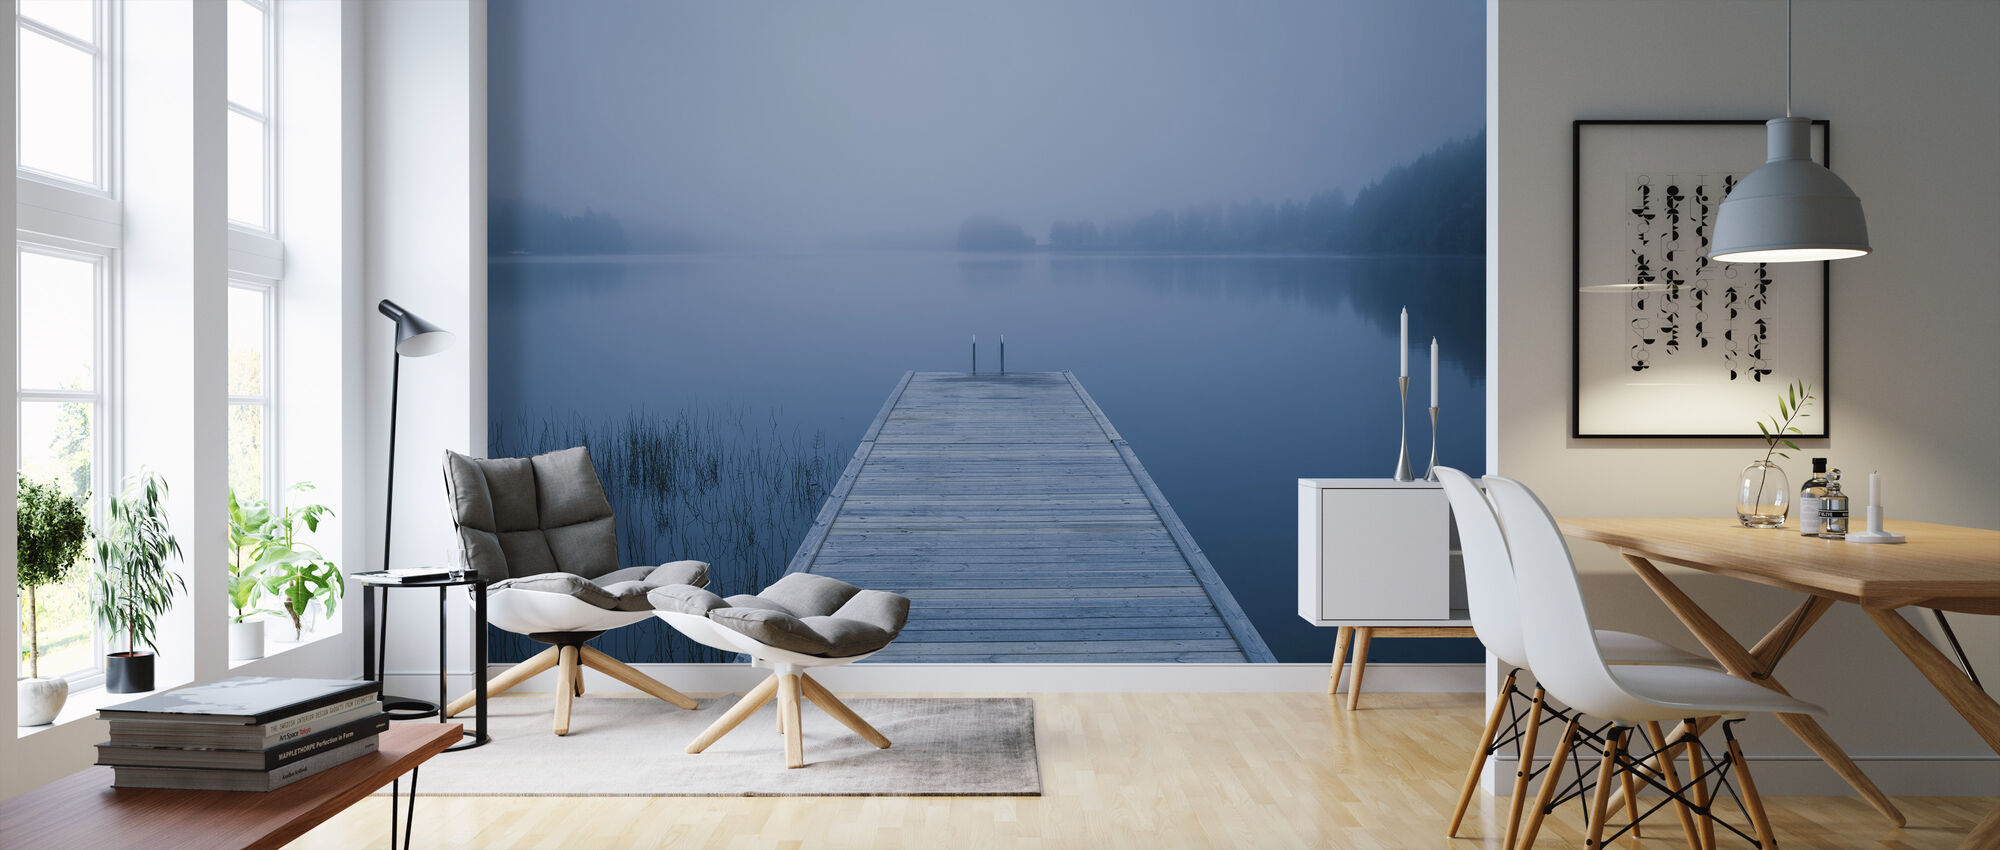 Alone at the Pier - Wallpaper - Living Room